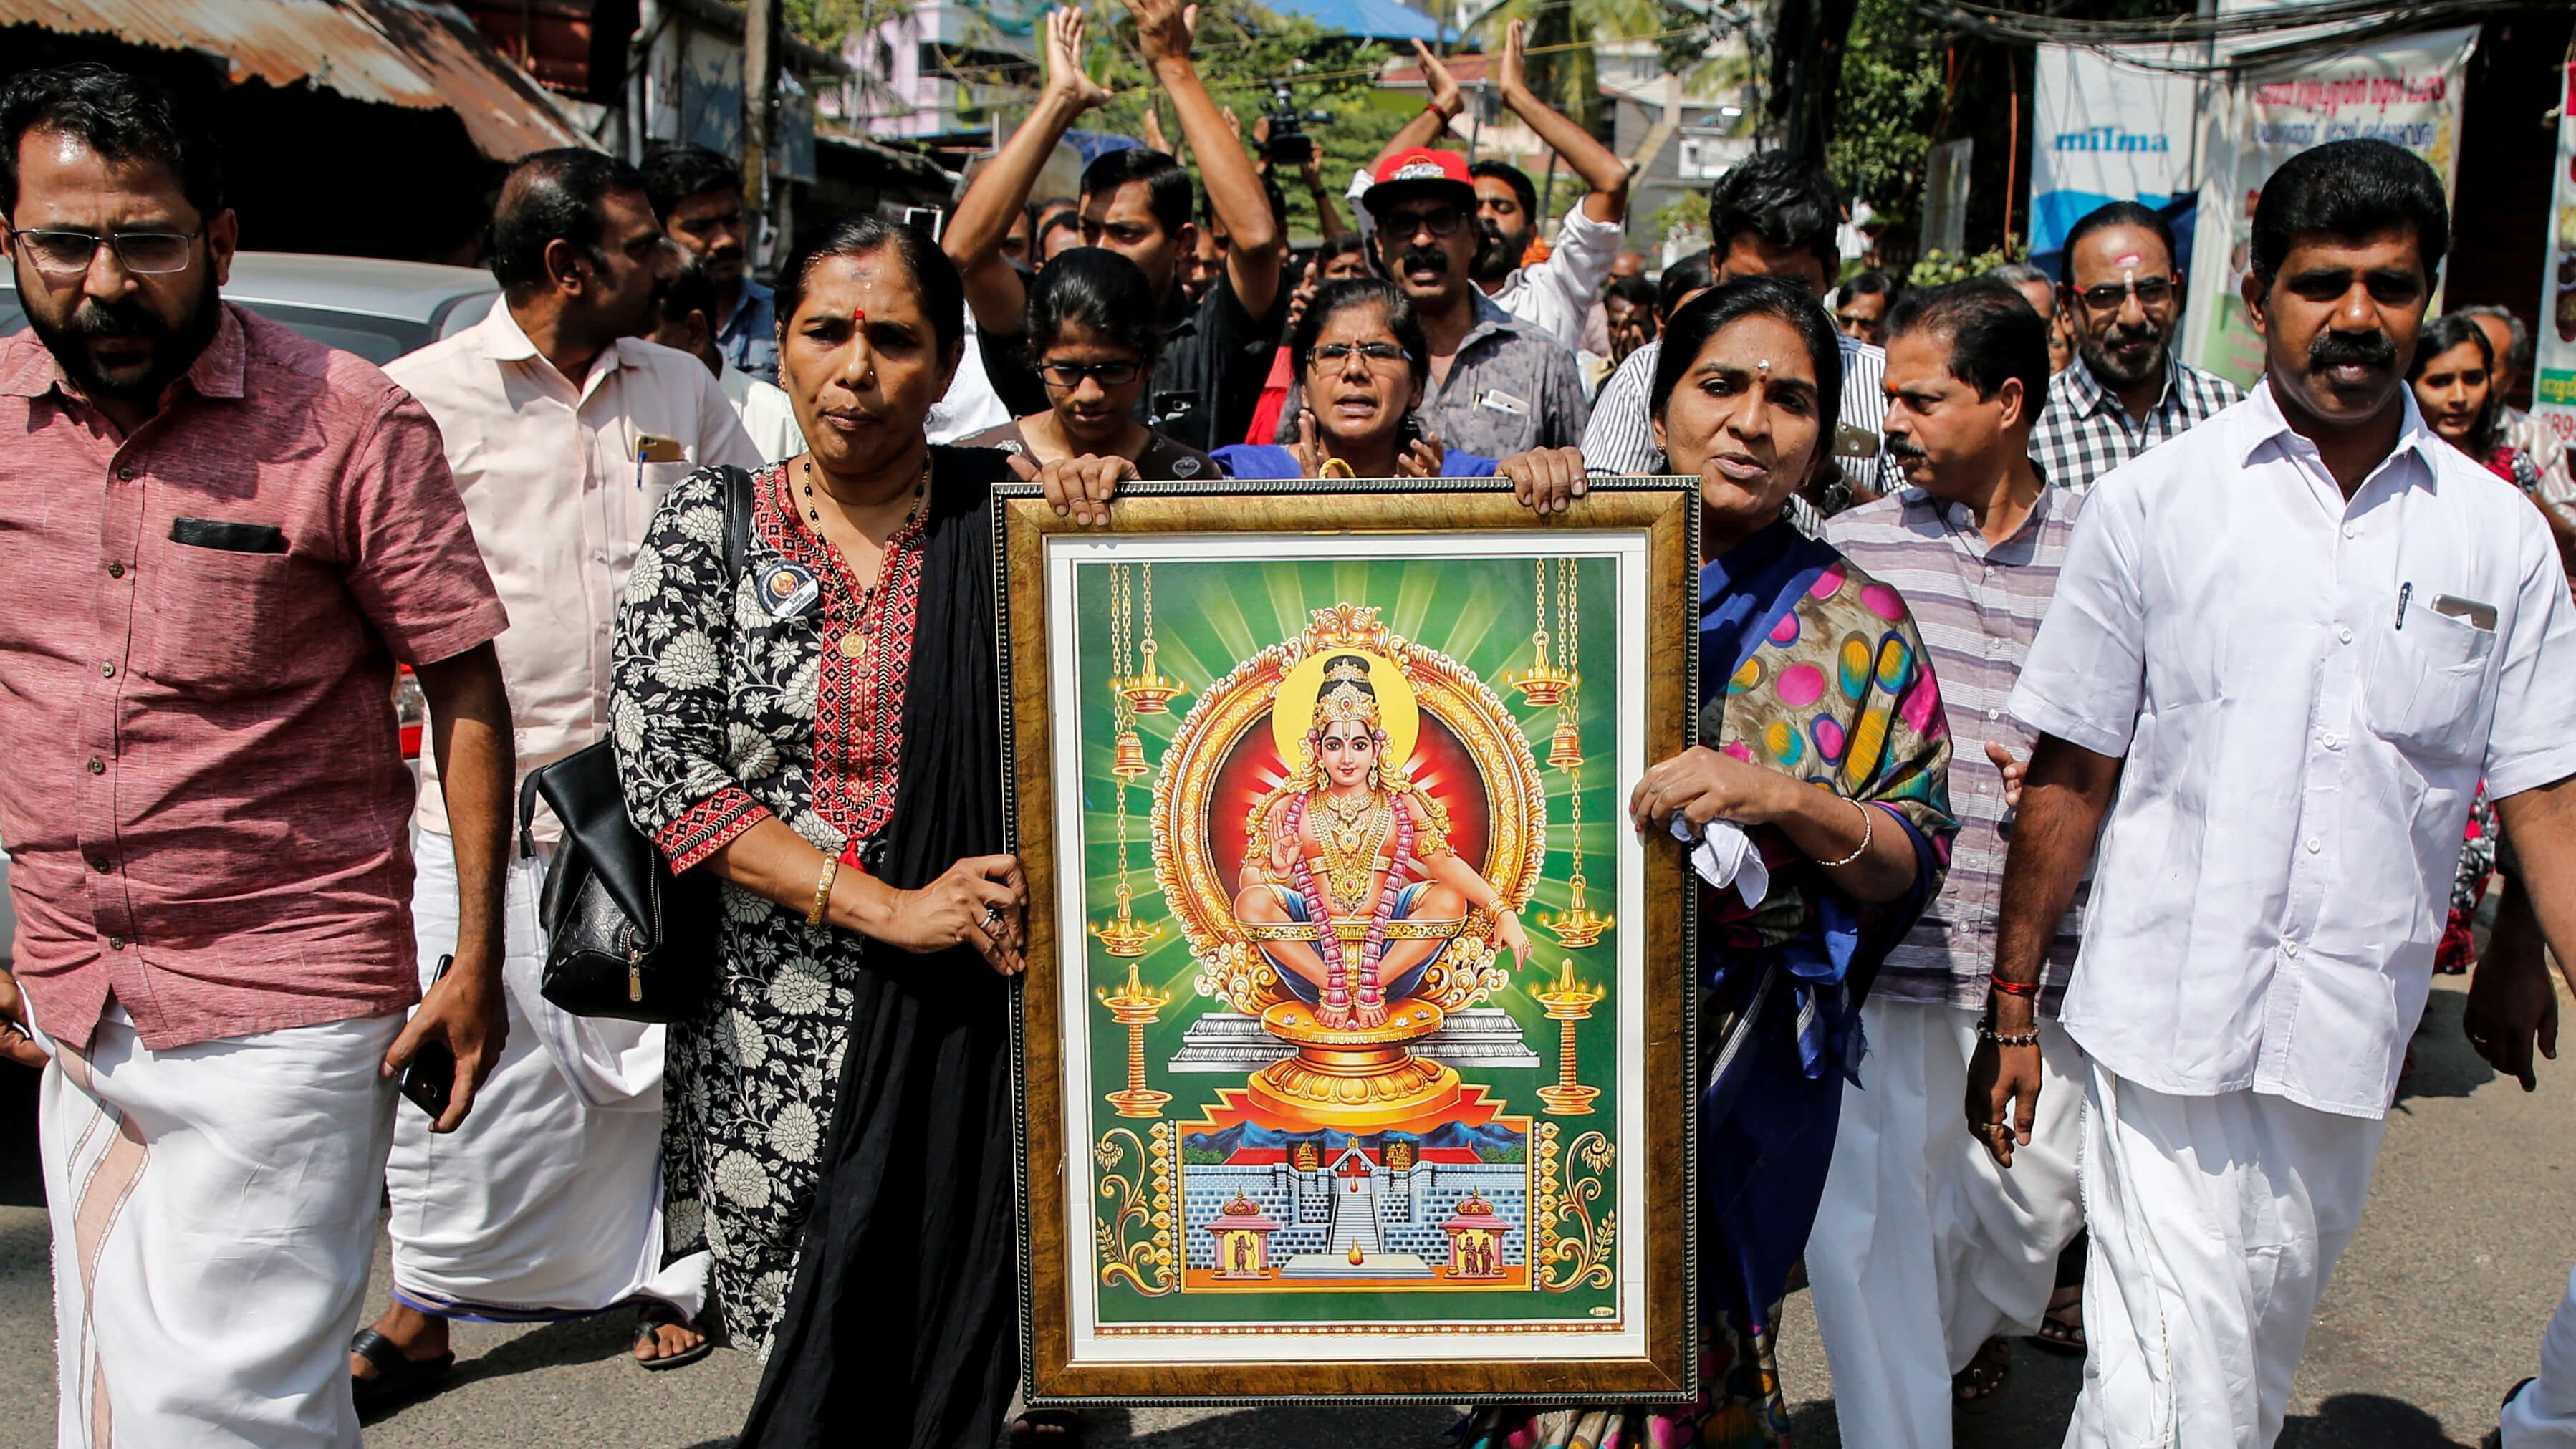 Protesters walk down the street carrying a sign of a Hindu deity.